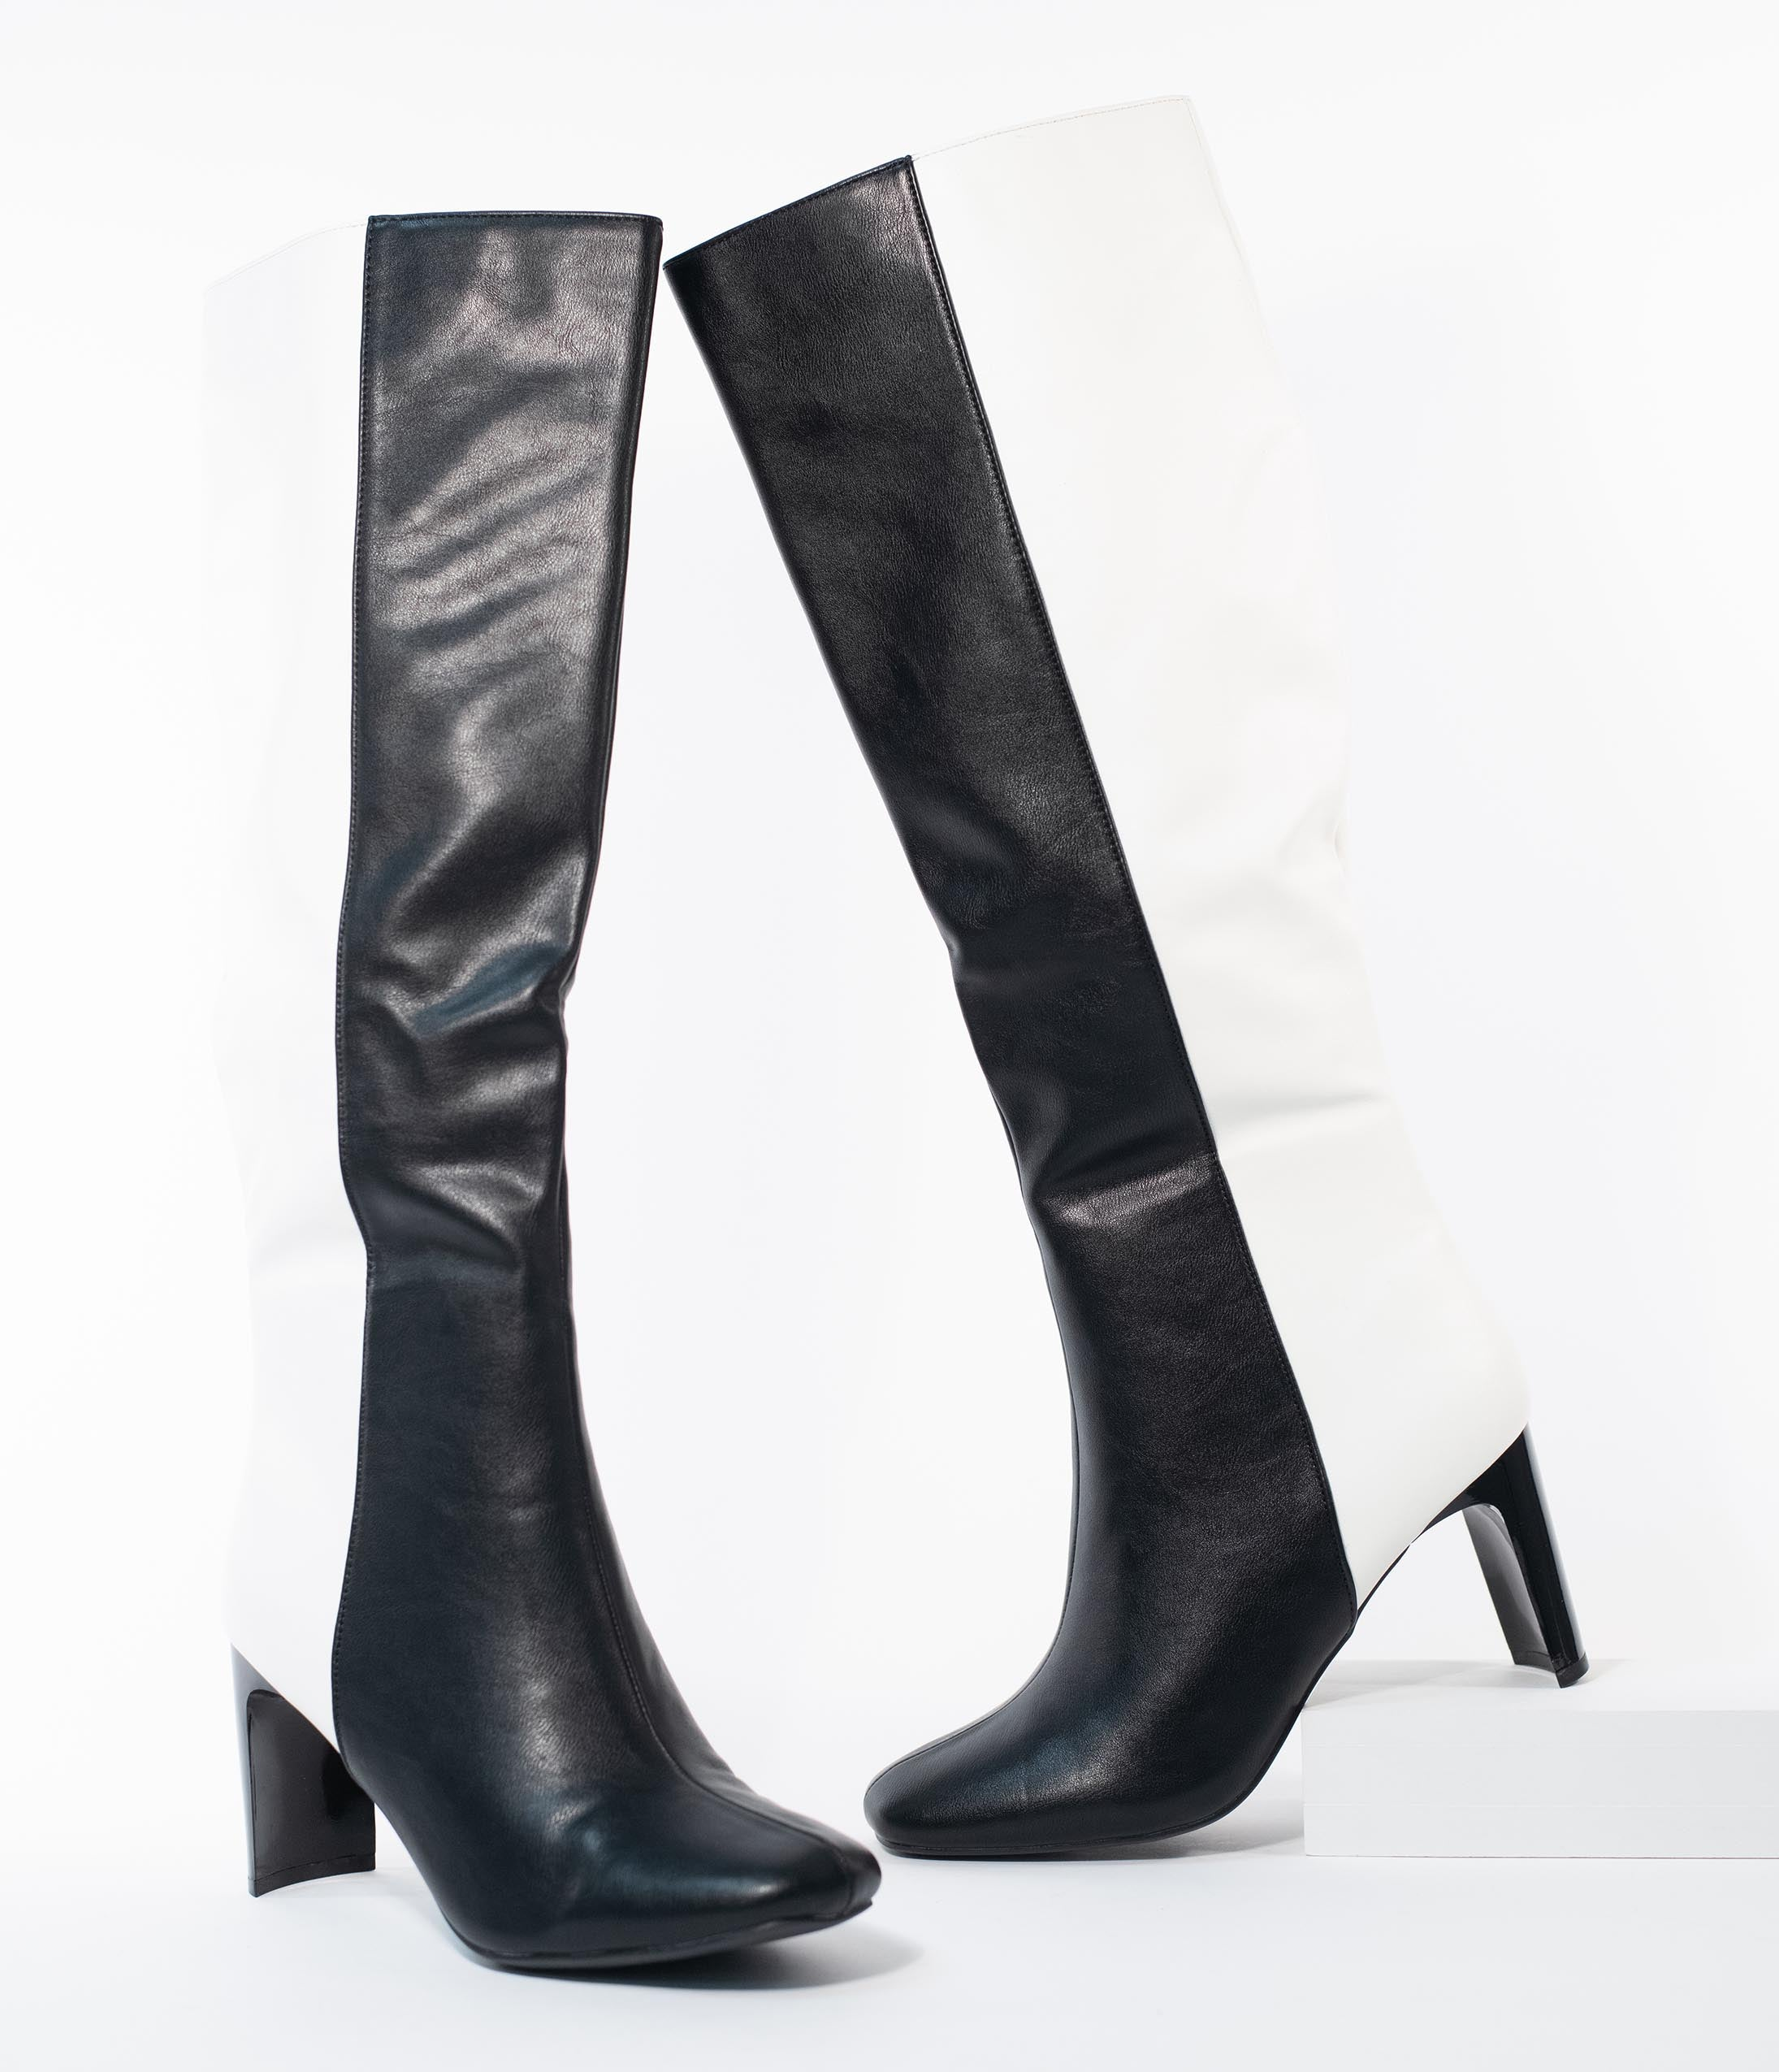 Vintage Boots- Buy Winter Retro Boots Black  White Color Block Leatherette Knee High Boots $72.00 AT vintagedancer.com